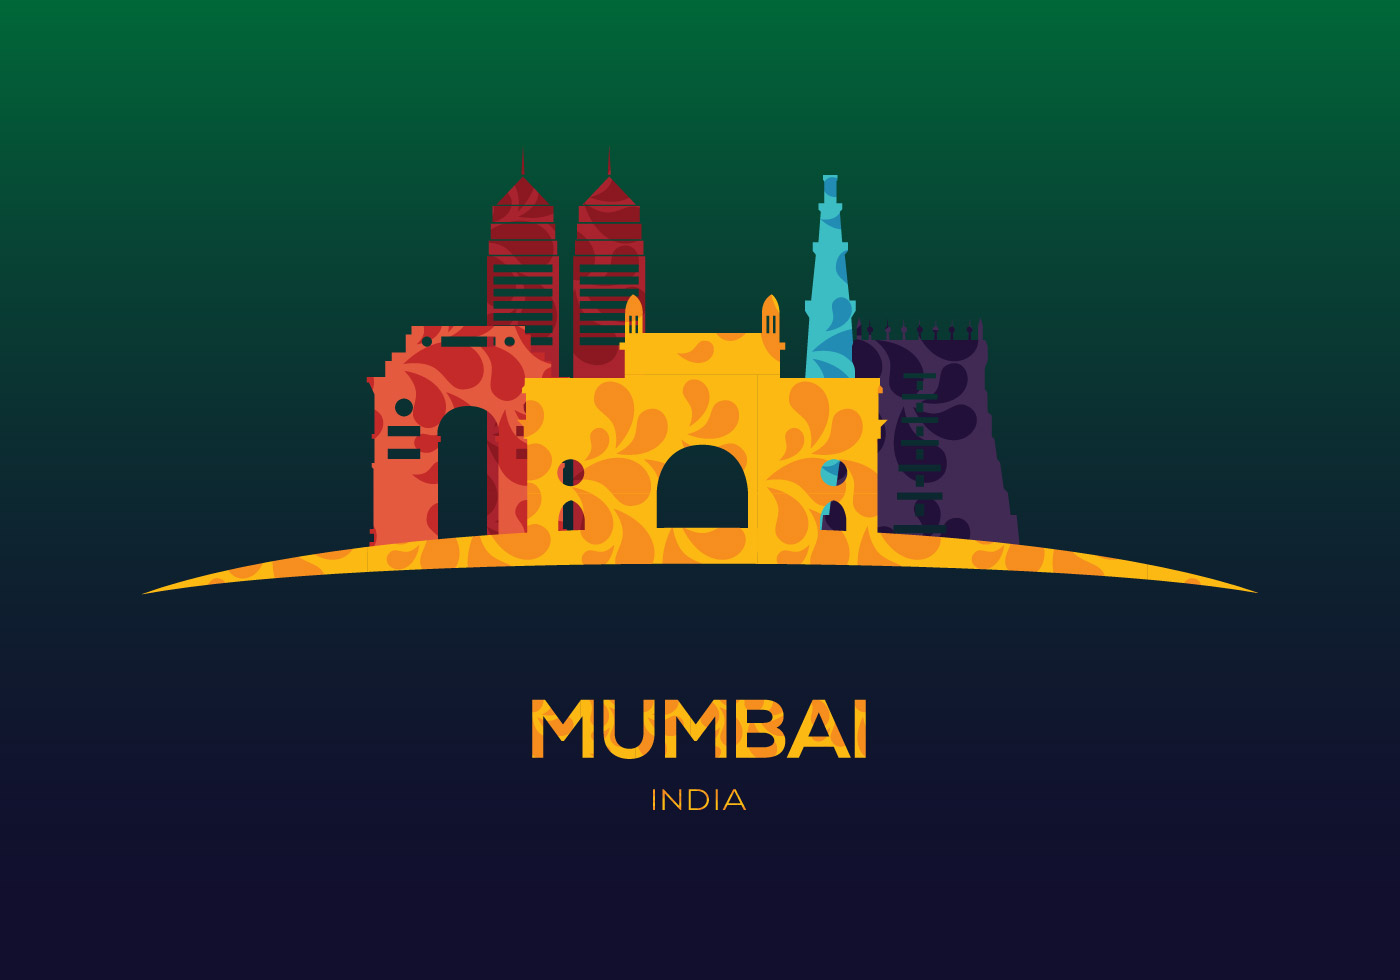 Mumbai Vector - Download Free Vector Art, Stock Graphics & Images